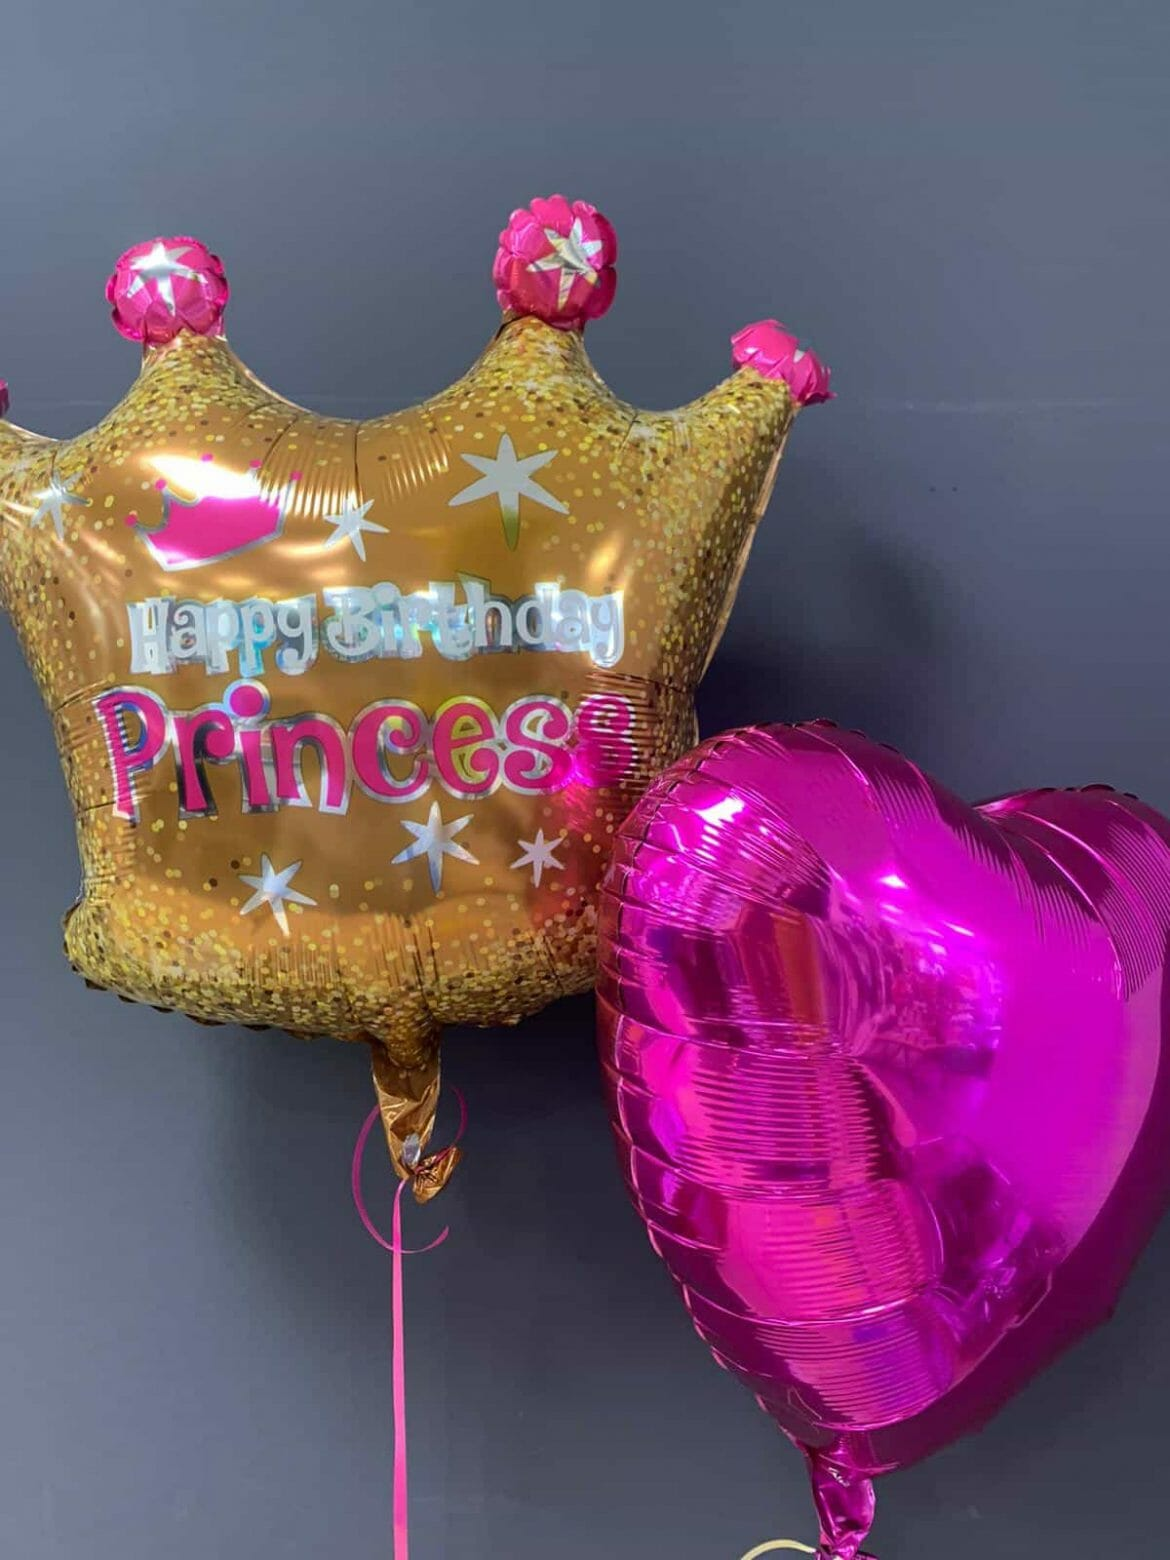 Happy Birthday Princess <br />Ballon Krone € 5,90 <br />Dekoherz lila € 4,50 1